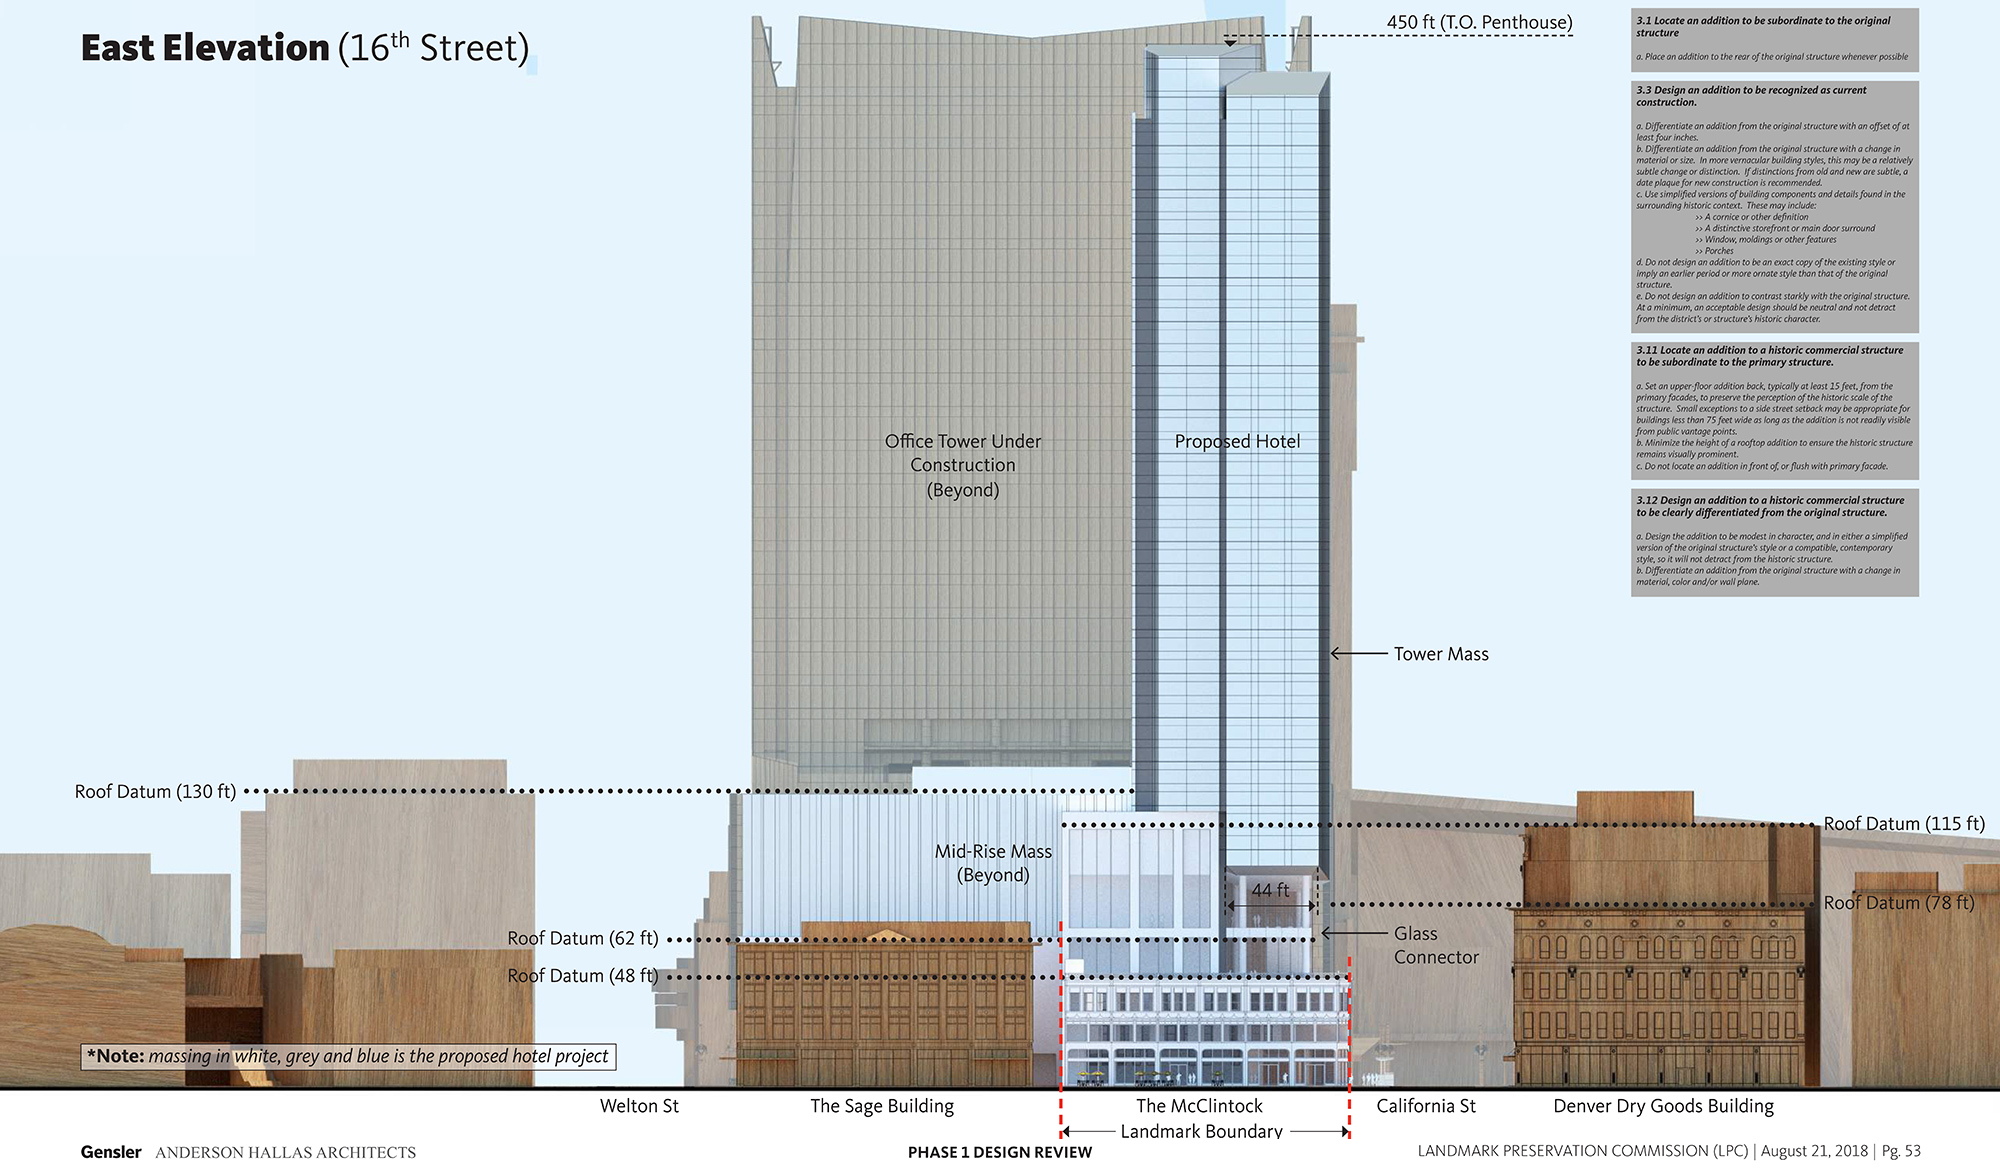 Proposed east elevation of Block 162 hotel, courtesy Gensler/Anderson Hallas Architects